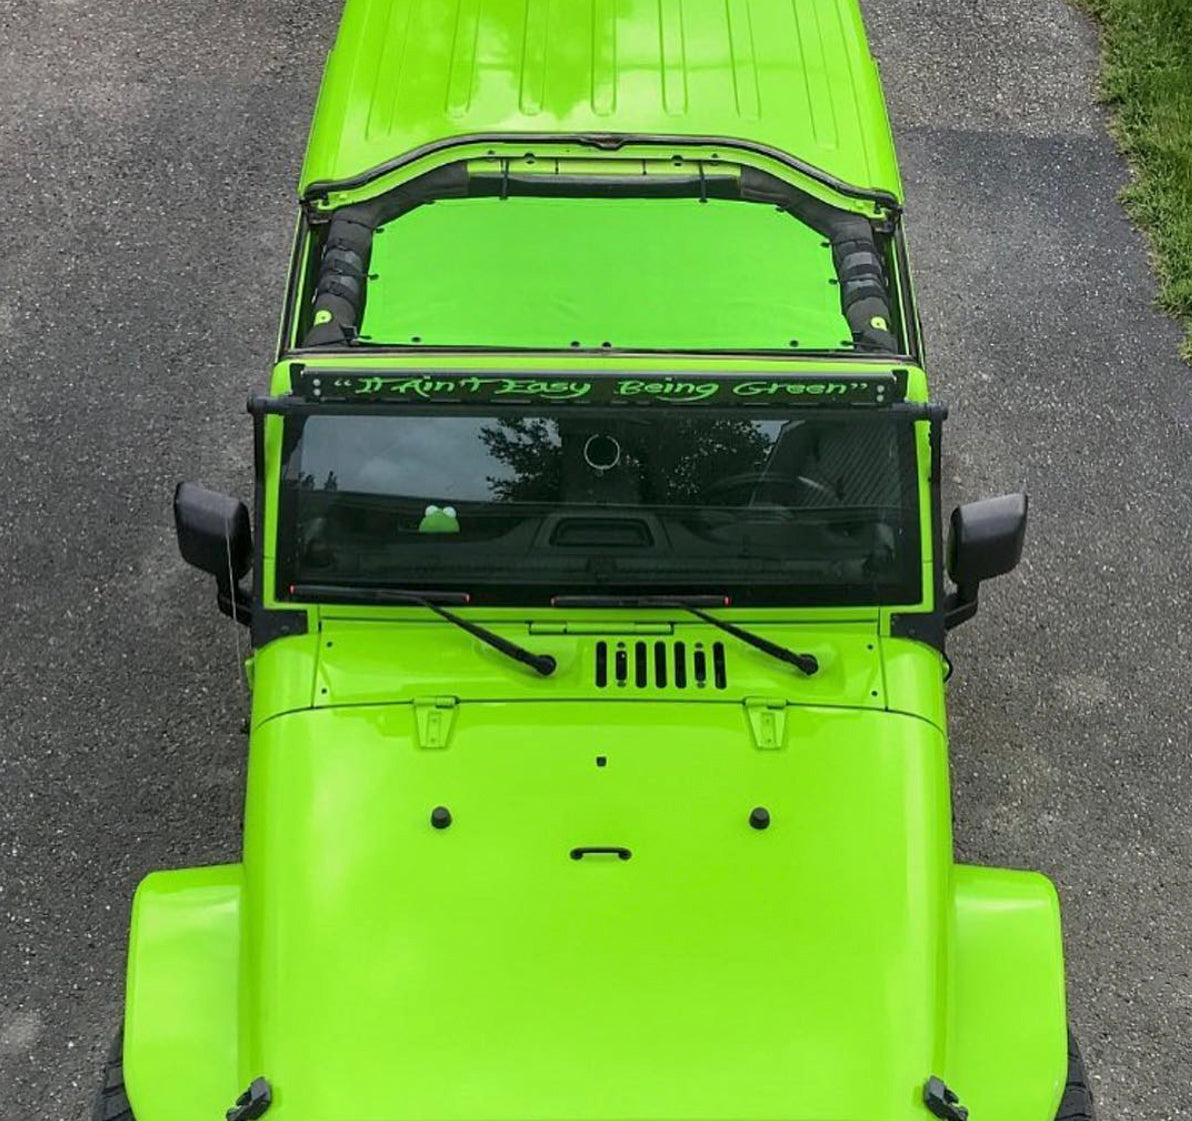 All Jeep Products - Sun Shades, Trail Accessories, Apparel